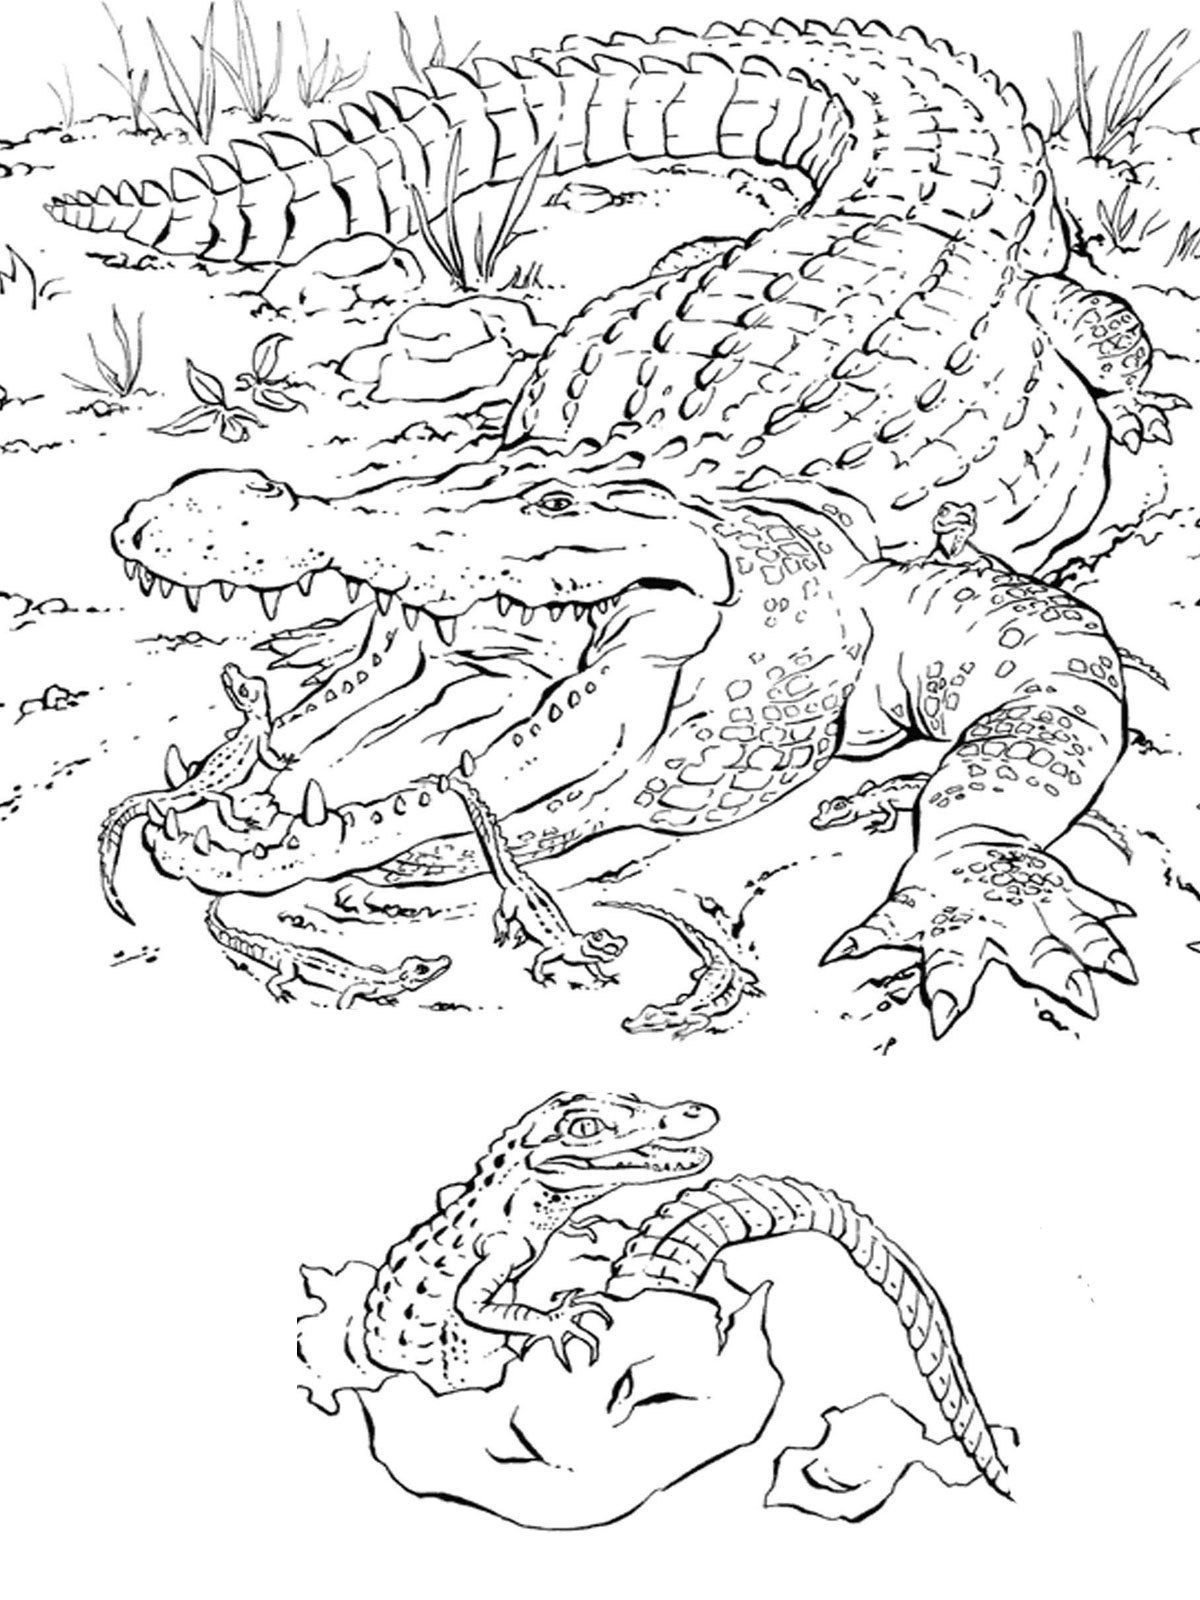 Realistic Animal Coloring Pages Advanced Coloring Pages Difficult 6563 Bestofcoloring Animal Coloring Books Detailed Coloring Pages Printable Coloring Book